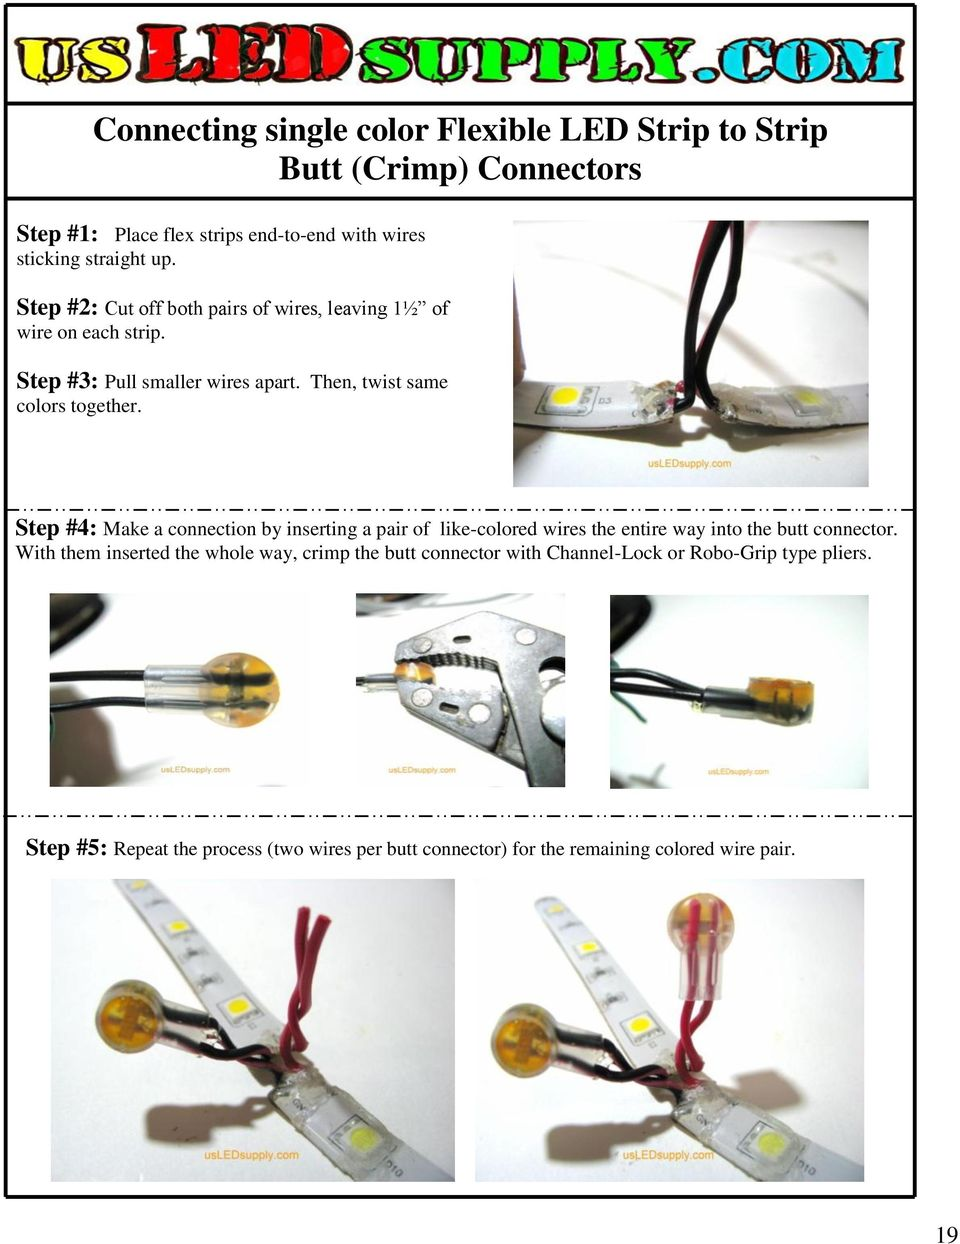 Step #4: Make a connection by inserting a pair of like-colored wires the entire way into the butt connector.